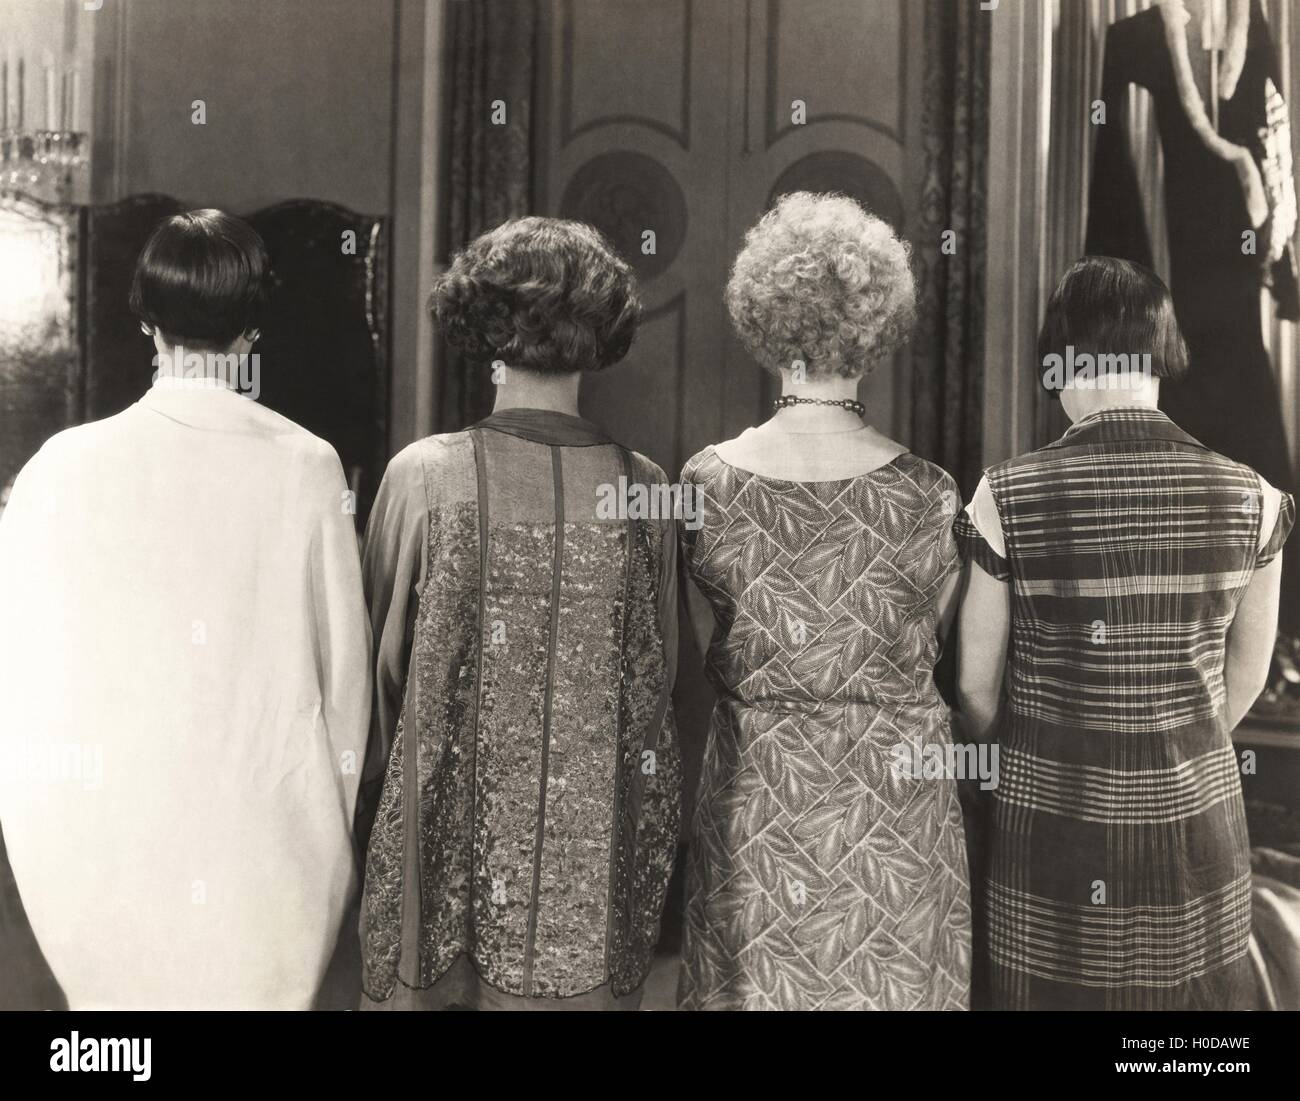 Rear view of four women standing in a row - Stock Image